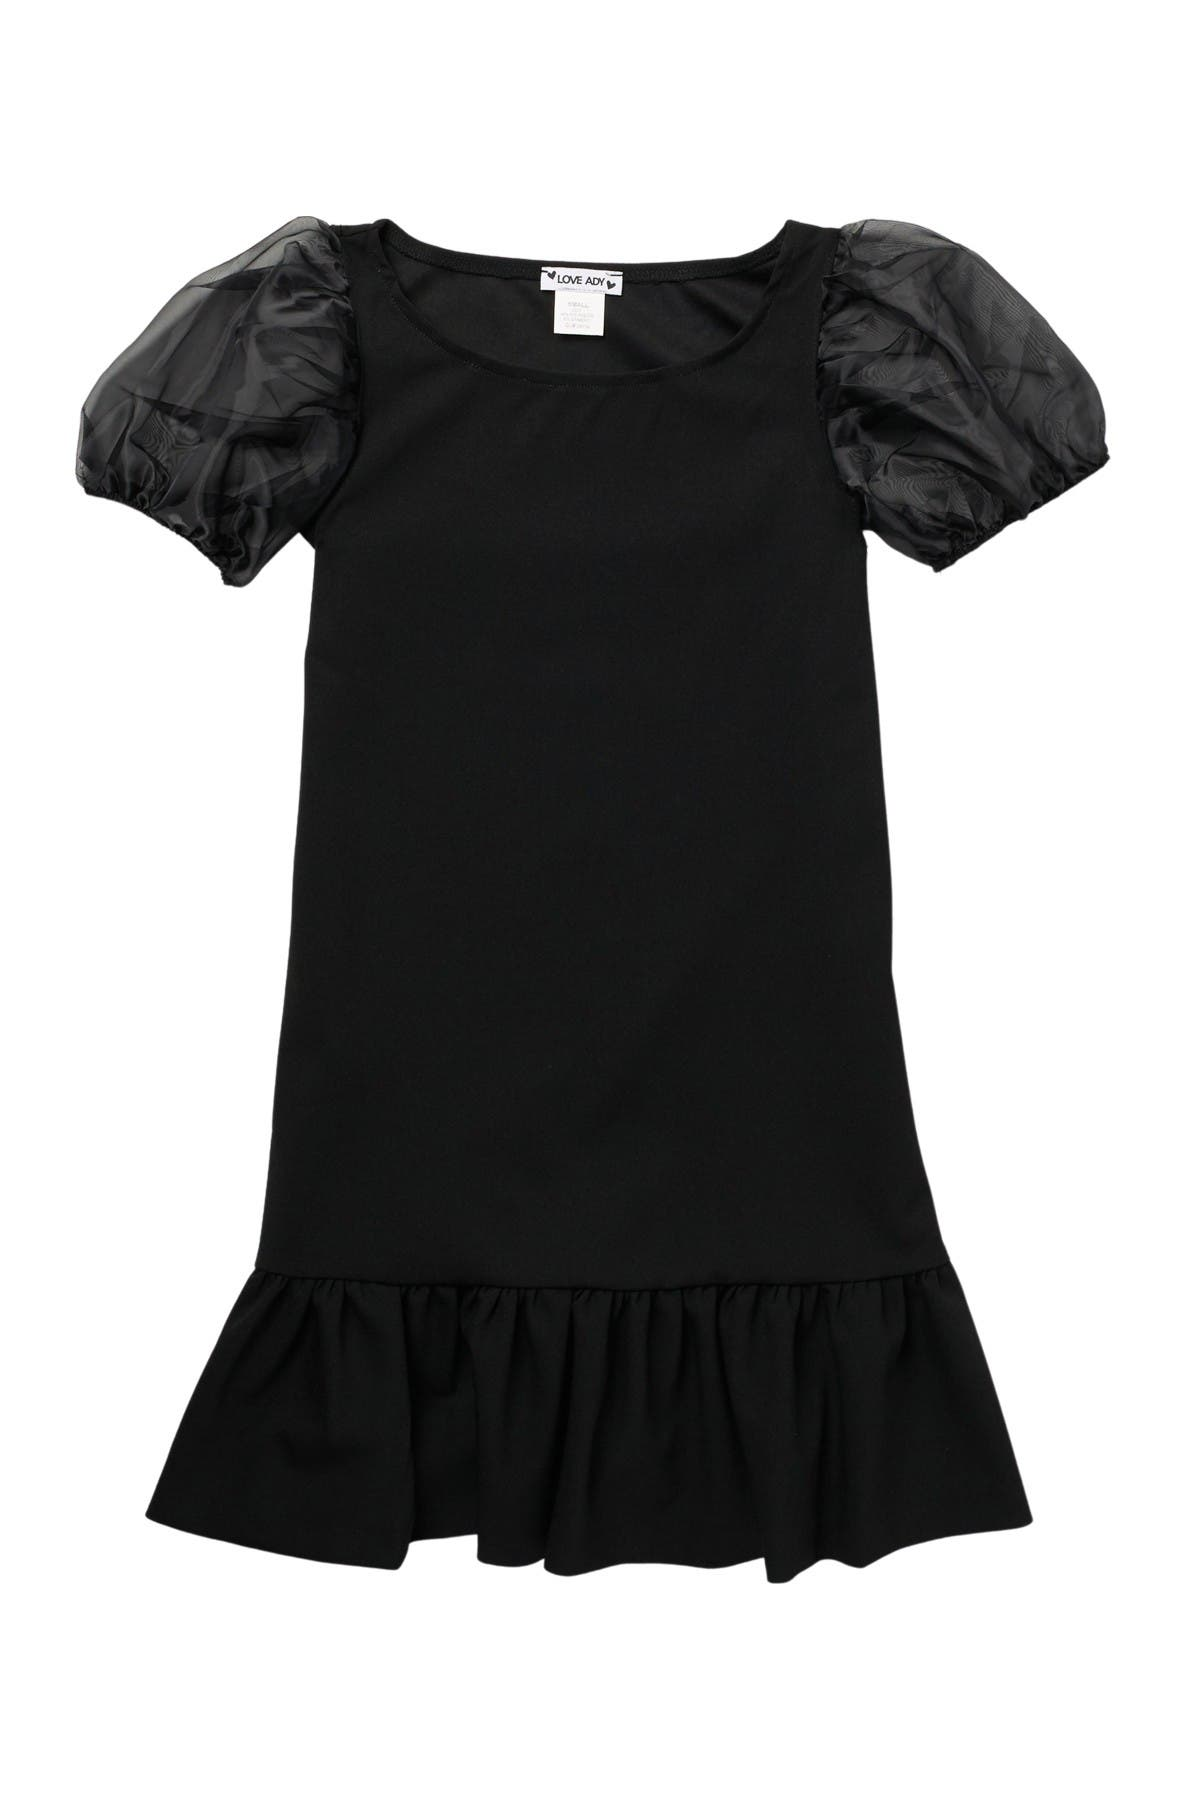 Image of Love...Ady Sheer Puff Sleeve Skater Dress